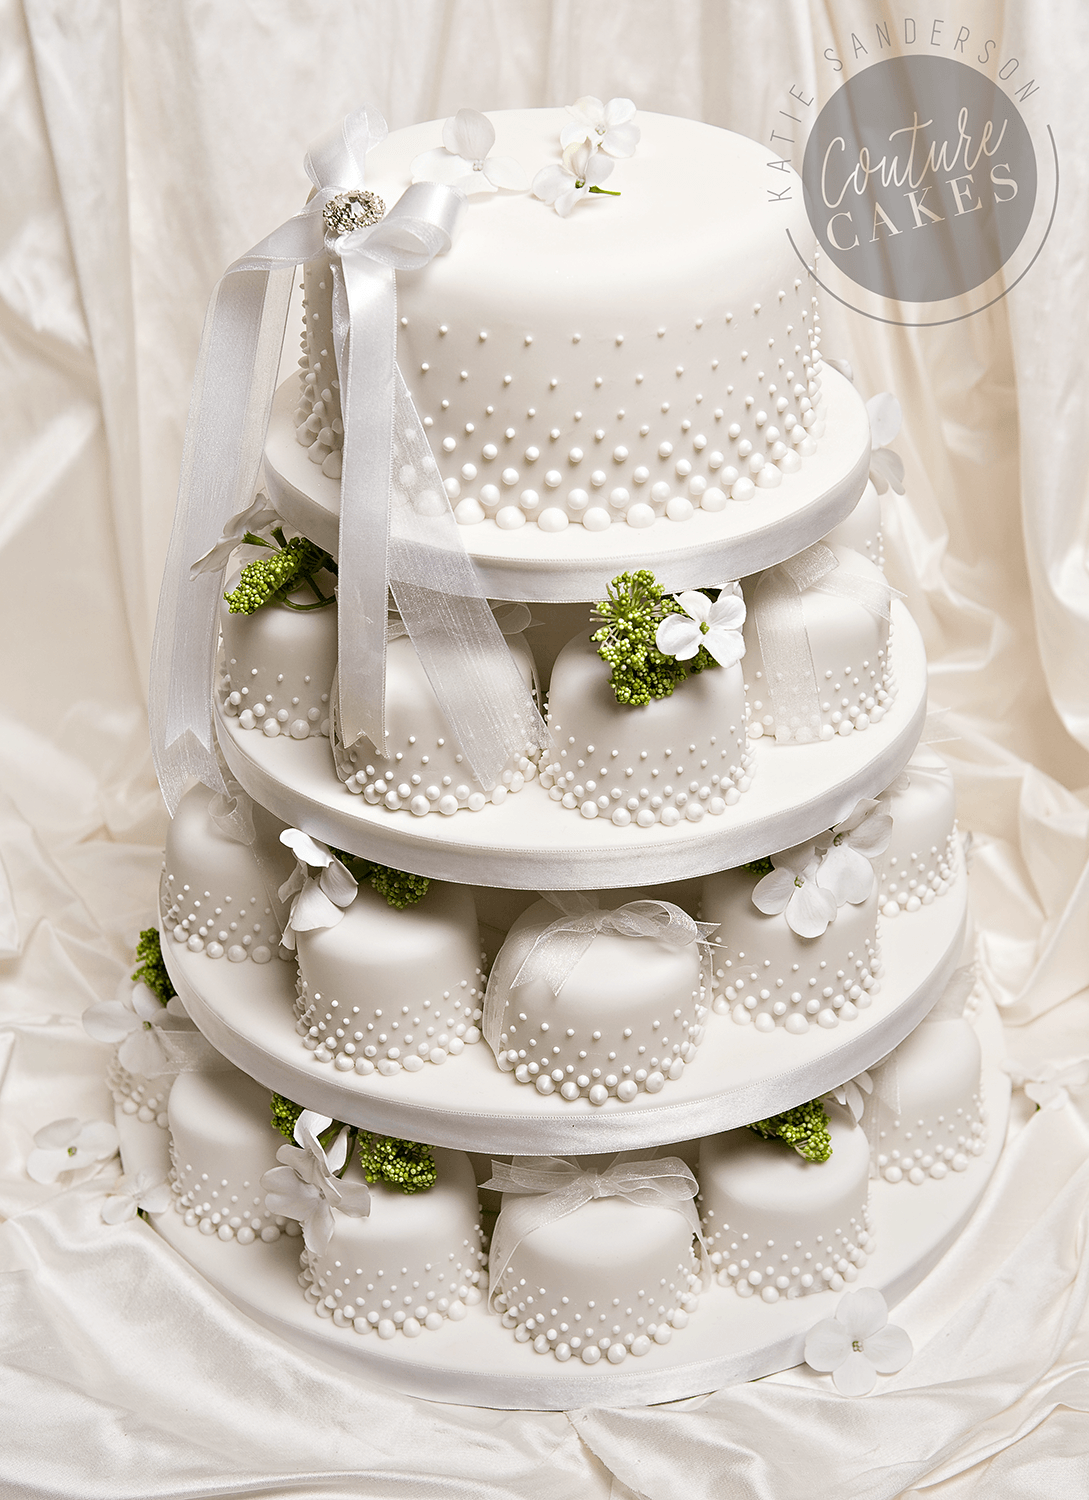 Serves 46 mini cakes & 20 portion top tier, Price as pictured £577 (with 46 mini cakes & 20 portion top tier)